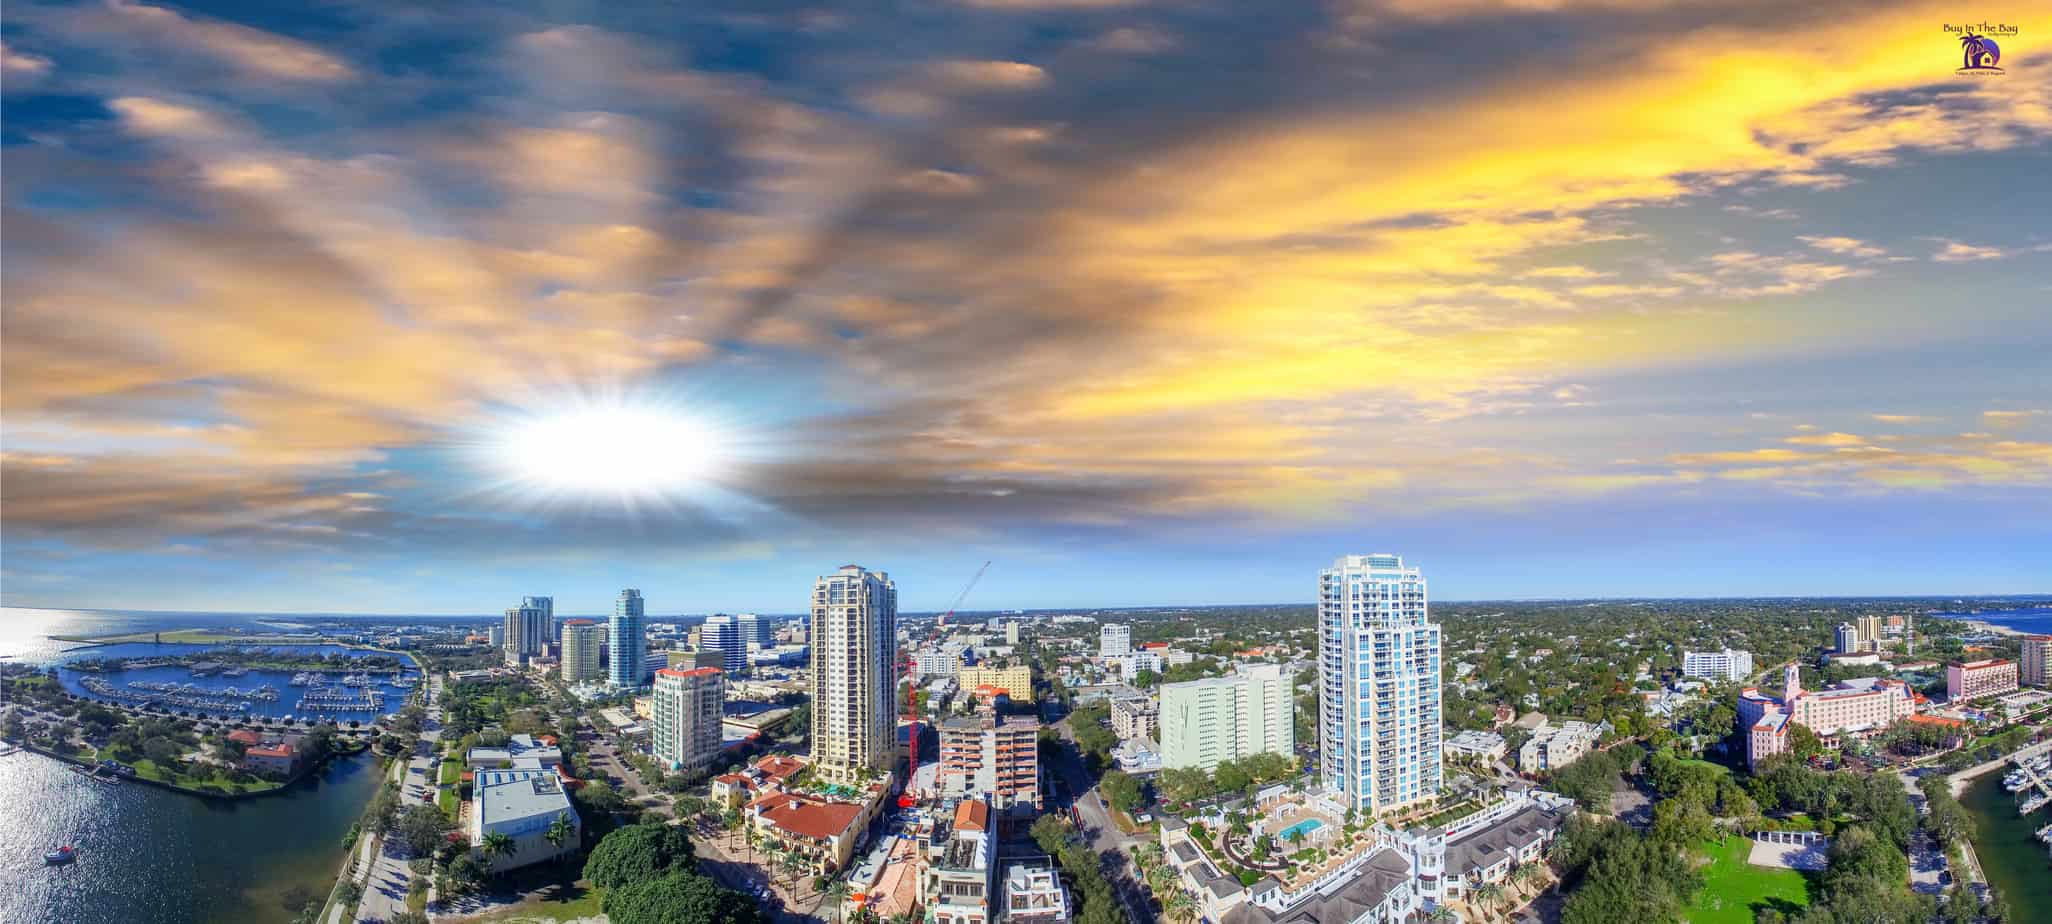 ariel view of the sunset over St. Pete in Pinellas County Florida with water and buildings